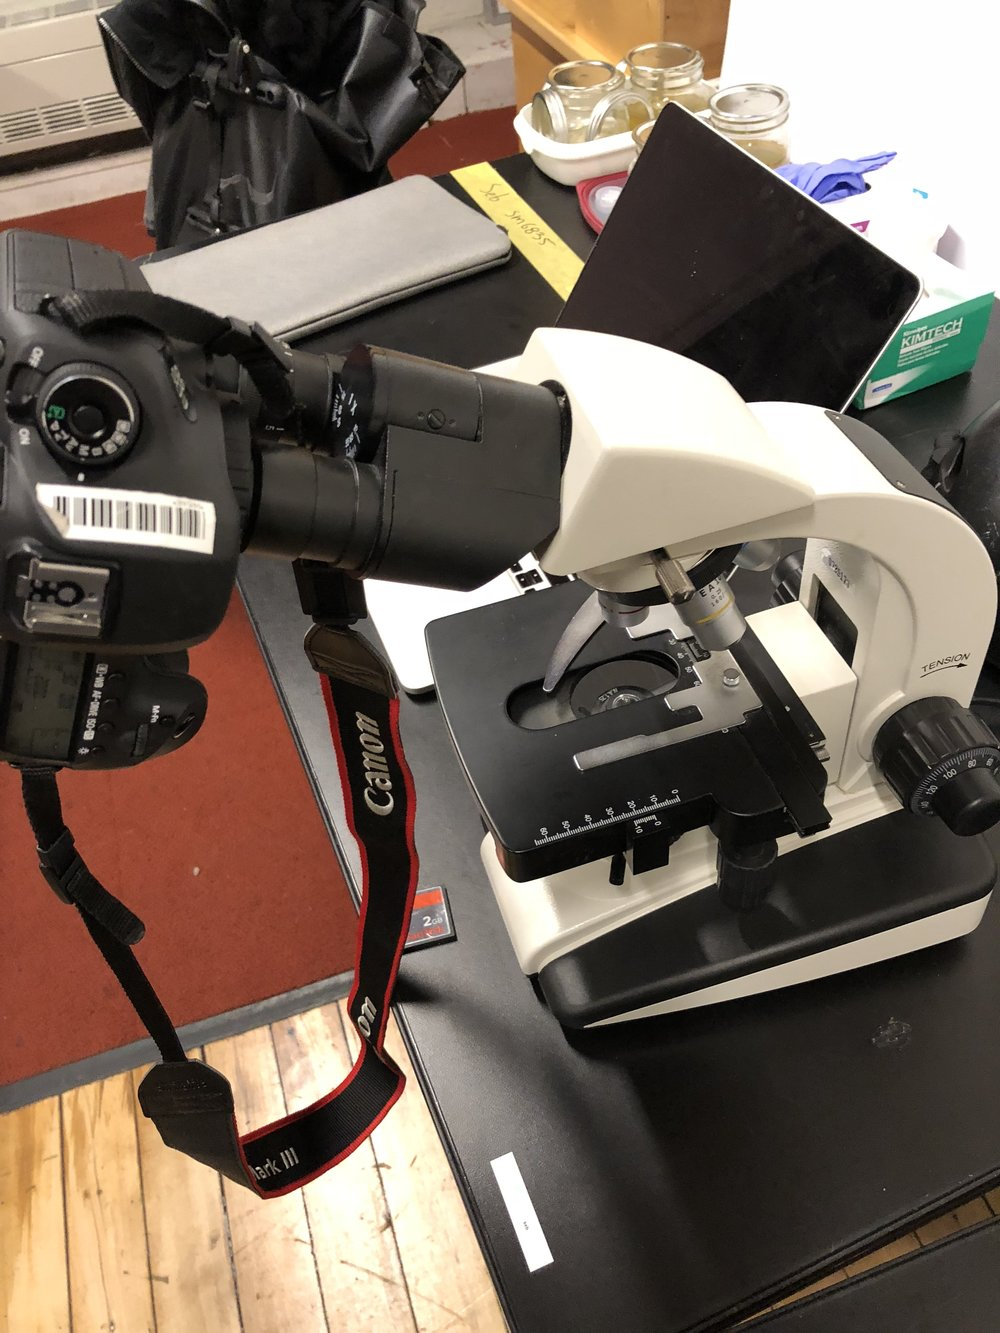 Canon mounted on microscope